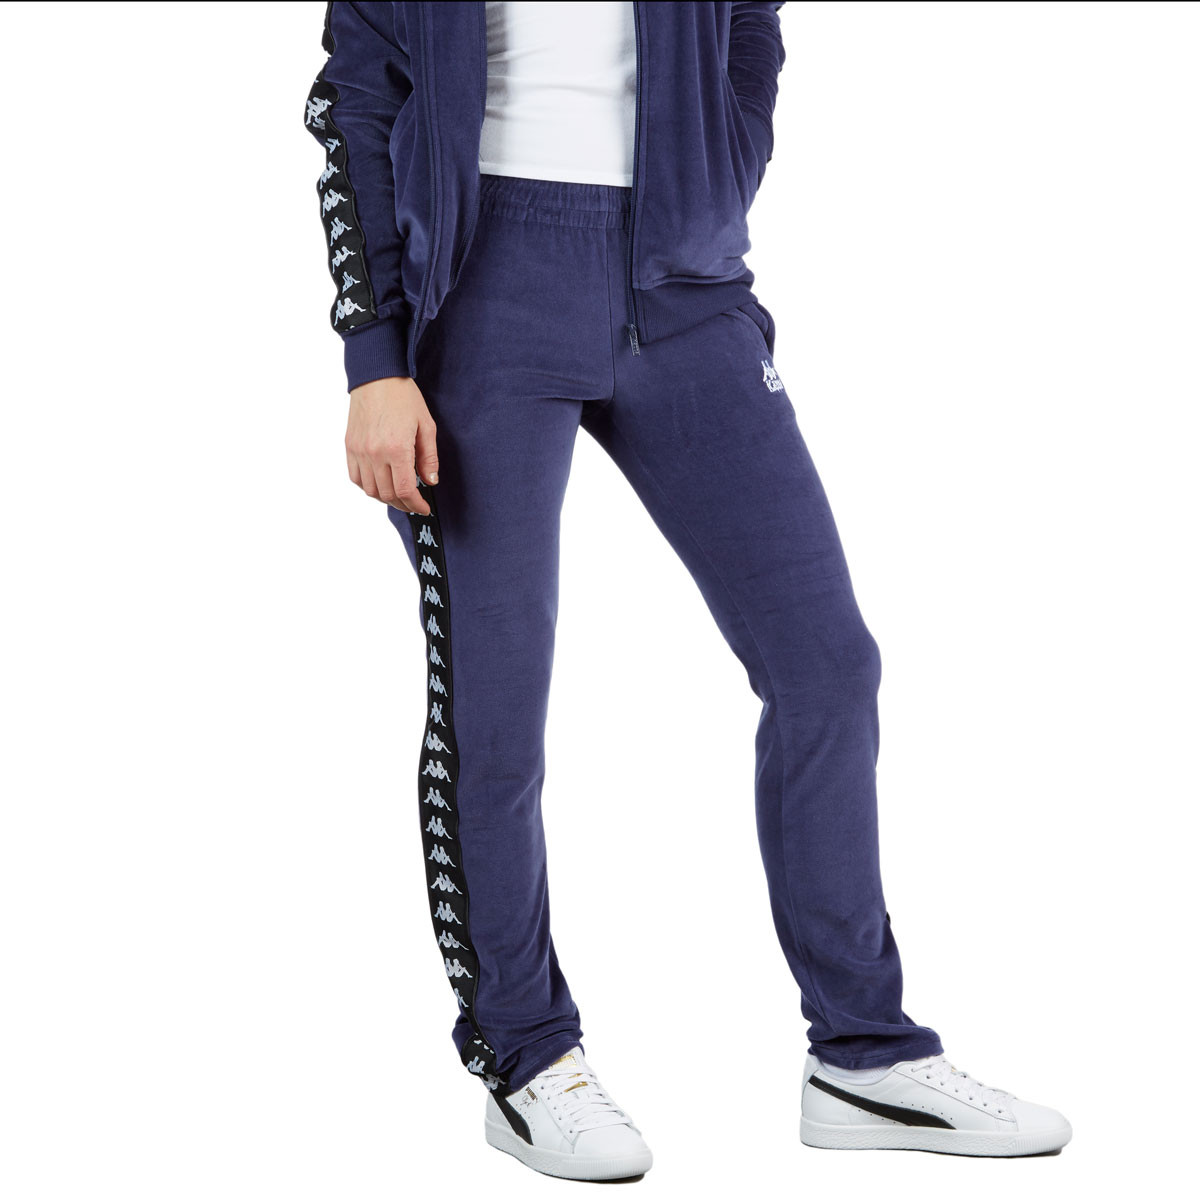 2ee08e5d5b Kappa Womens Authentic Melody Sweatpant